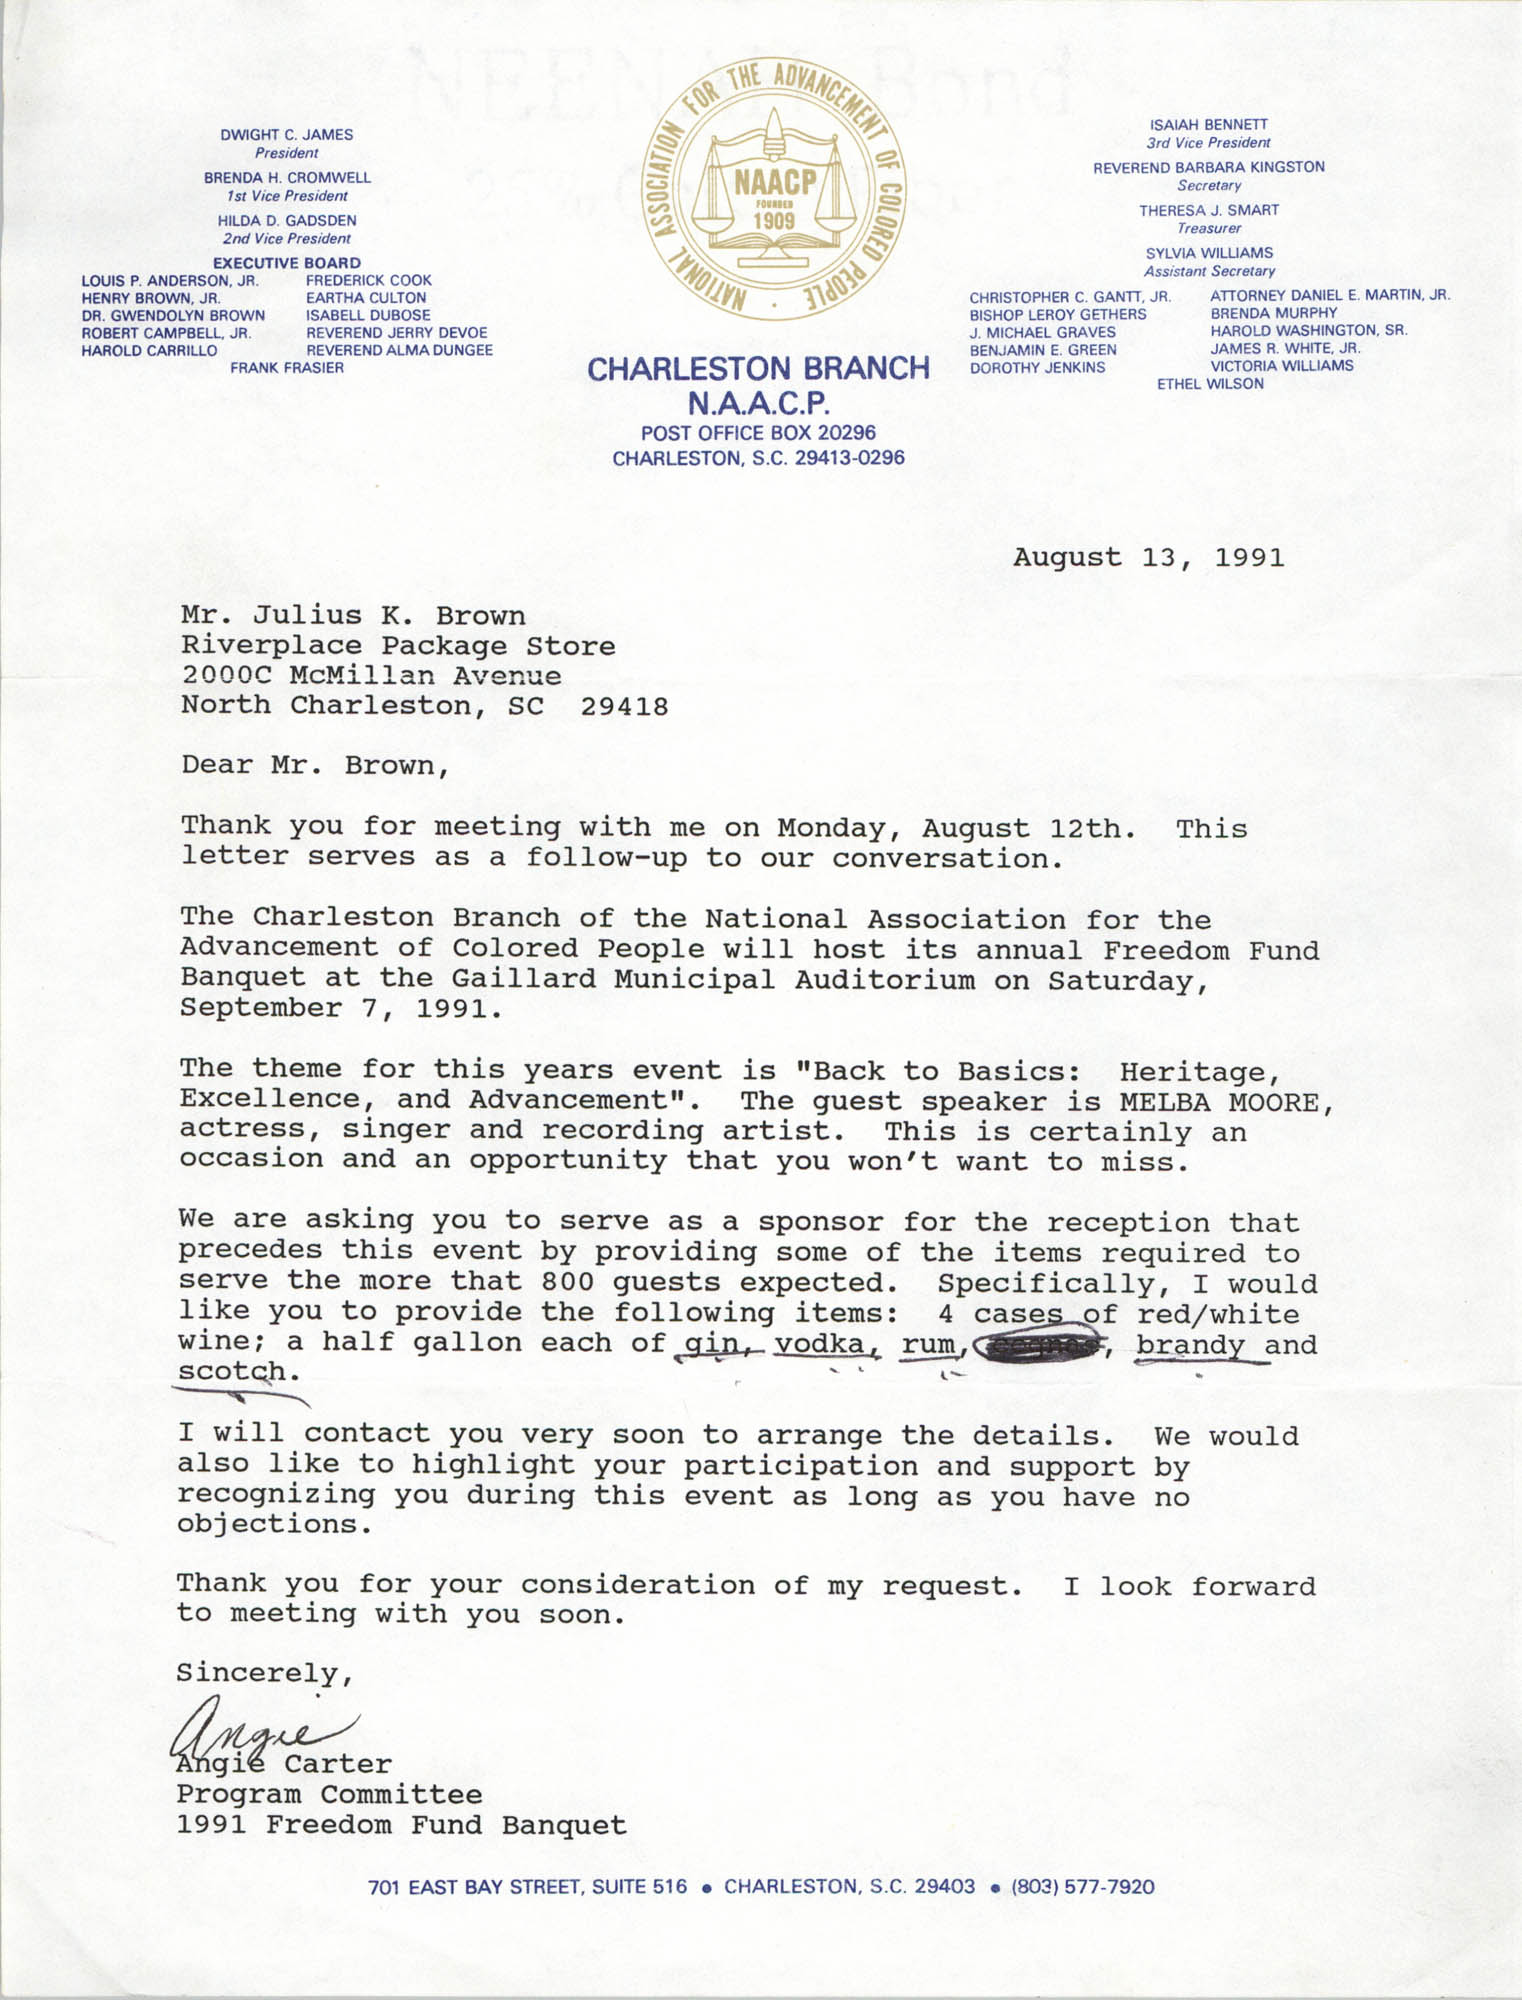 Letter from Angie Carter to Julius K. Brown, August 13, 1991